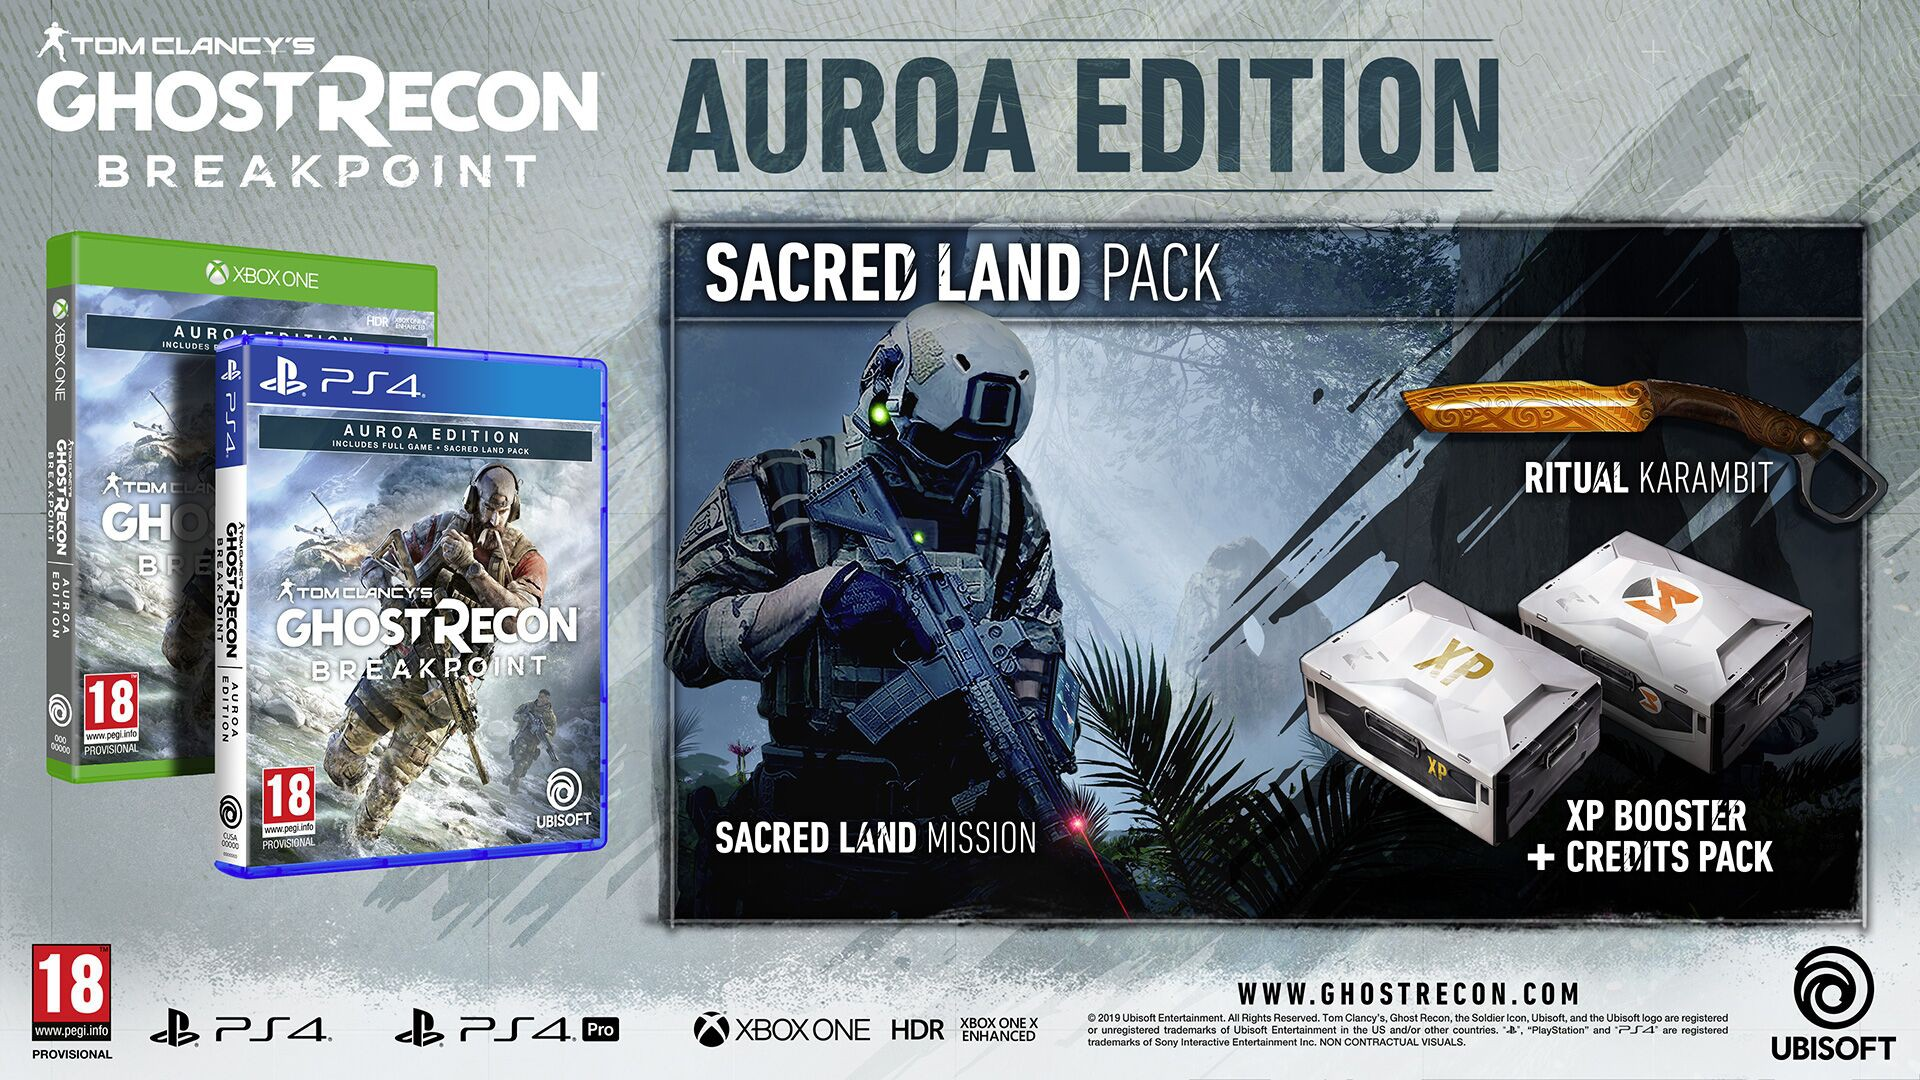 Tom Clancy's Ghost Recon Breakpoint AURORA edition + BETA